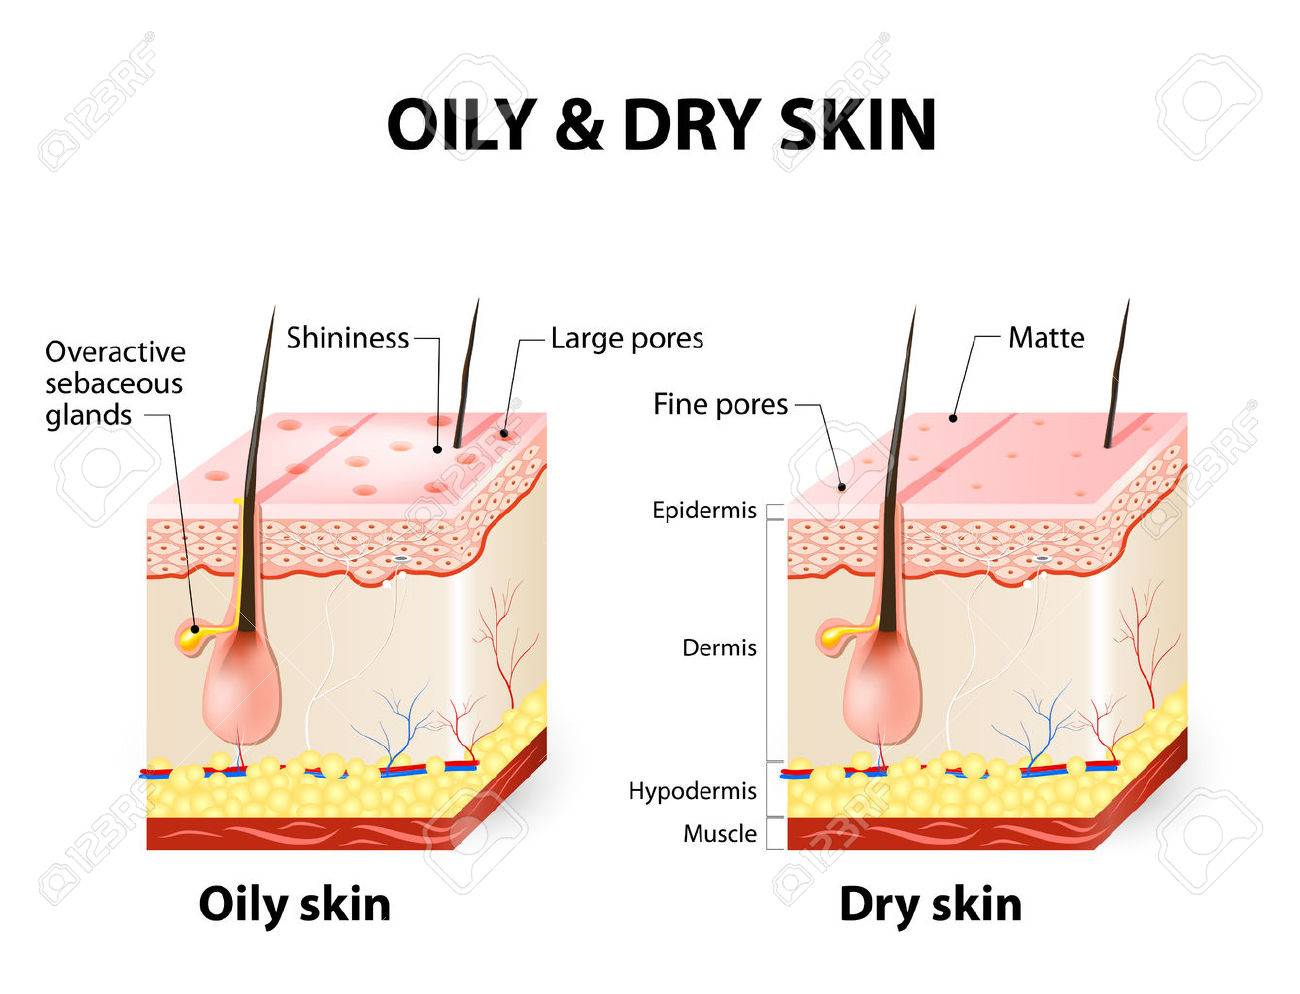 Oily & dry skin  Different  Human Skin types and conditions